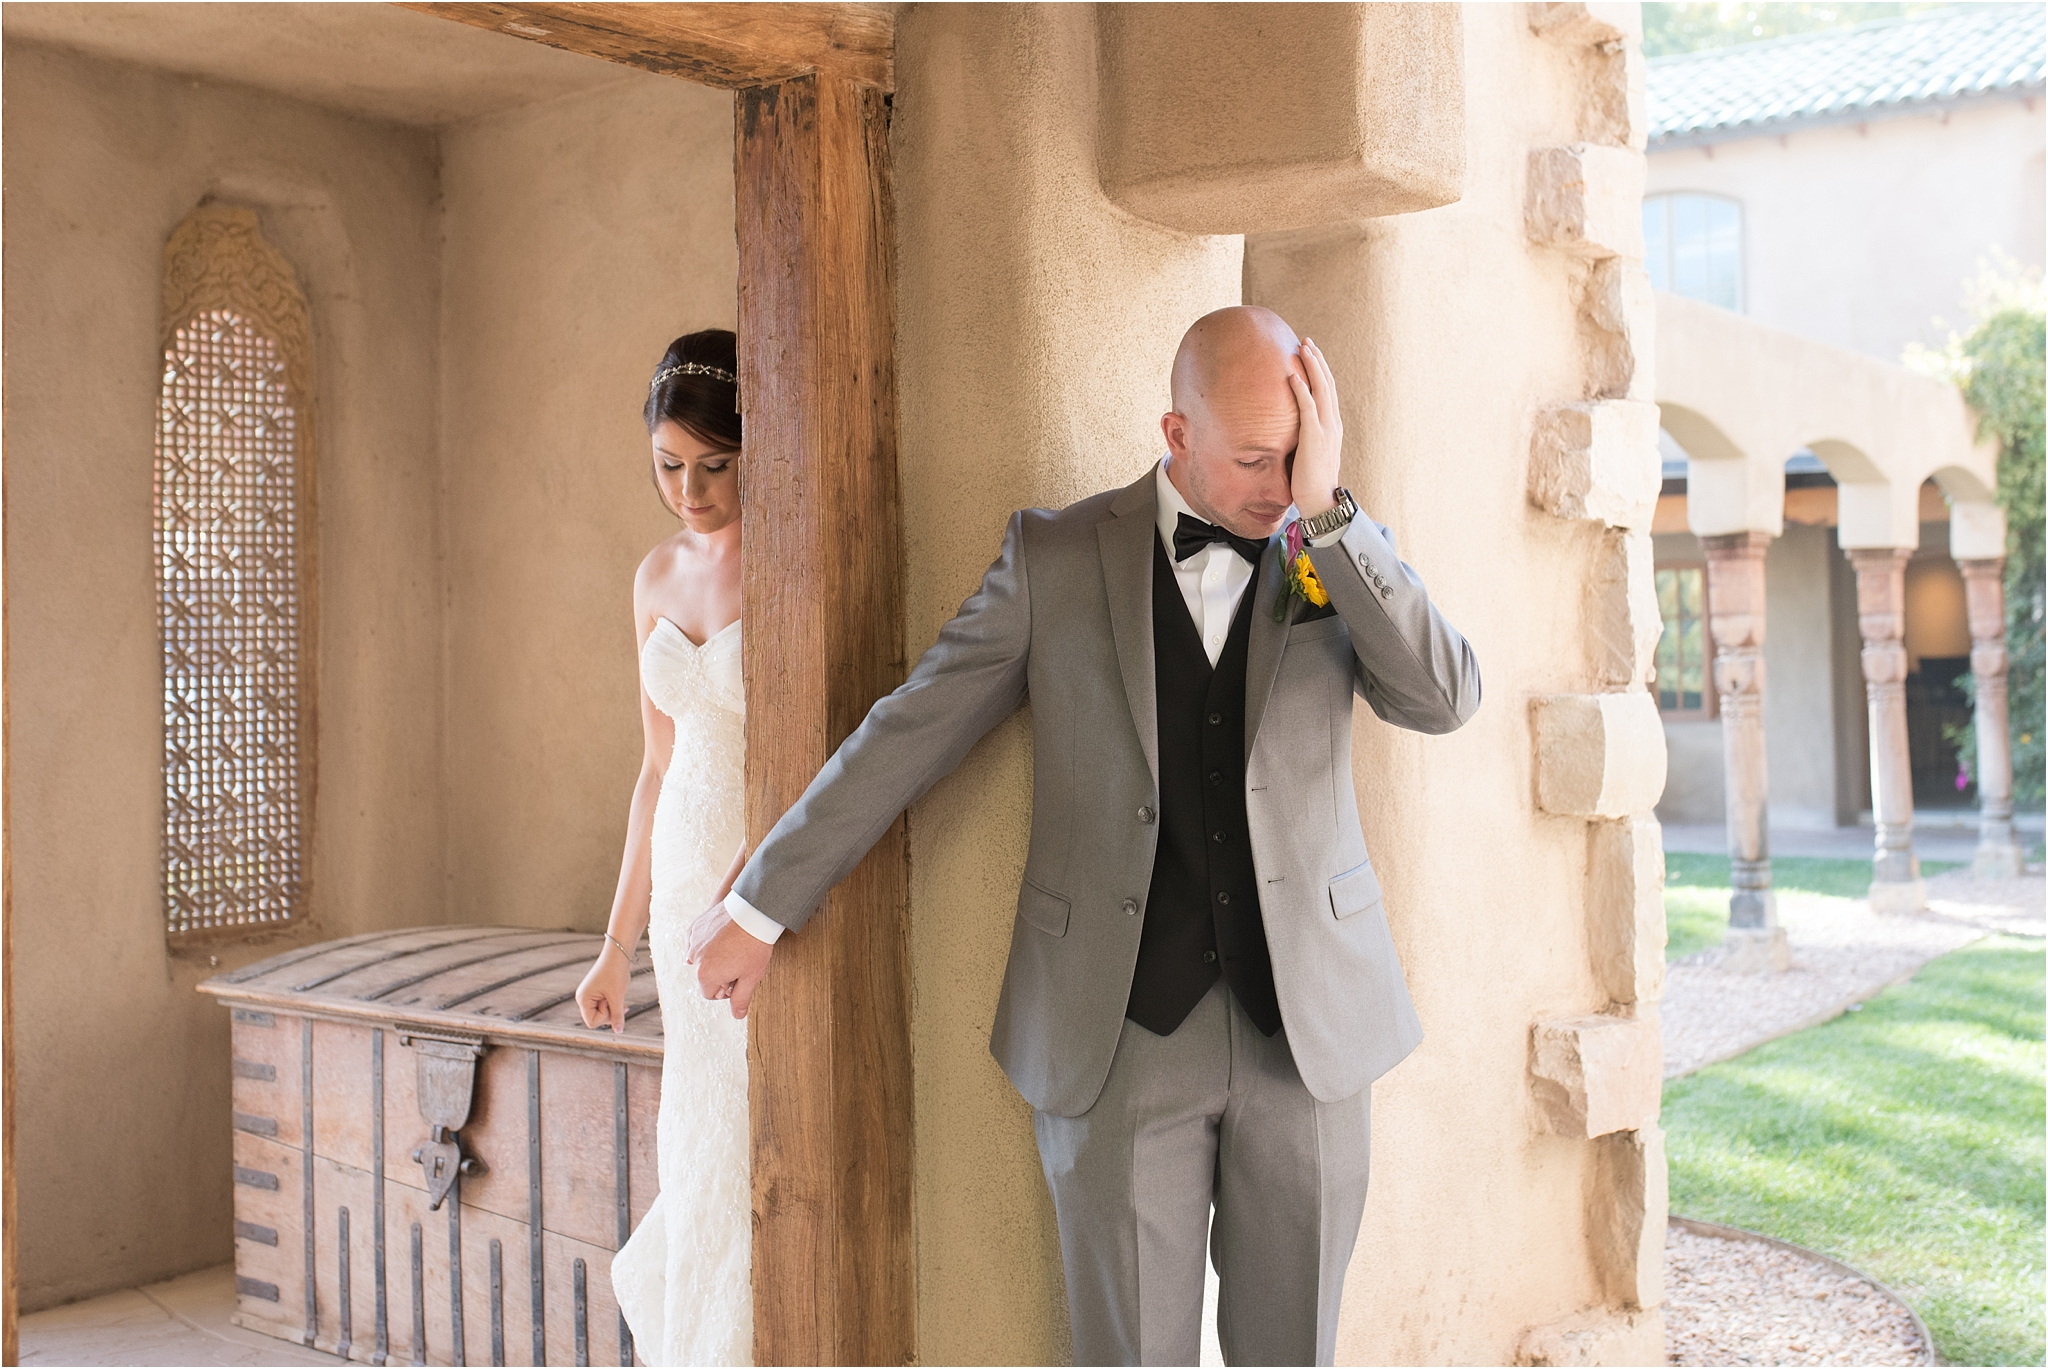 kayla kitts photography - albuquerque wedding photographer - orange september - cjohnson makeup_0018.jpg